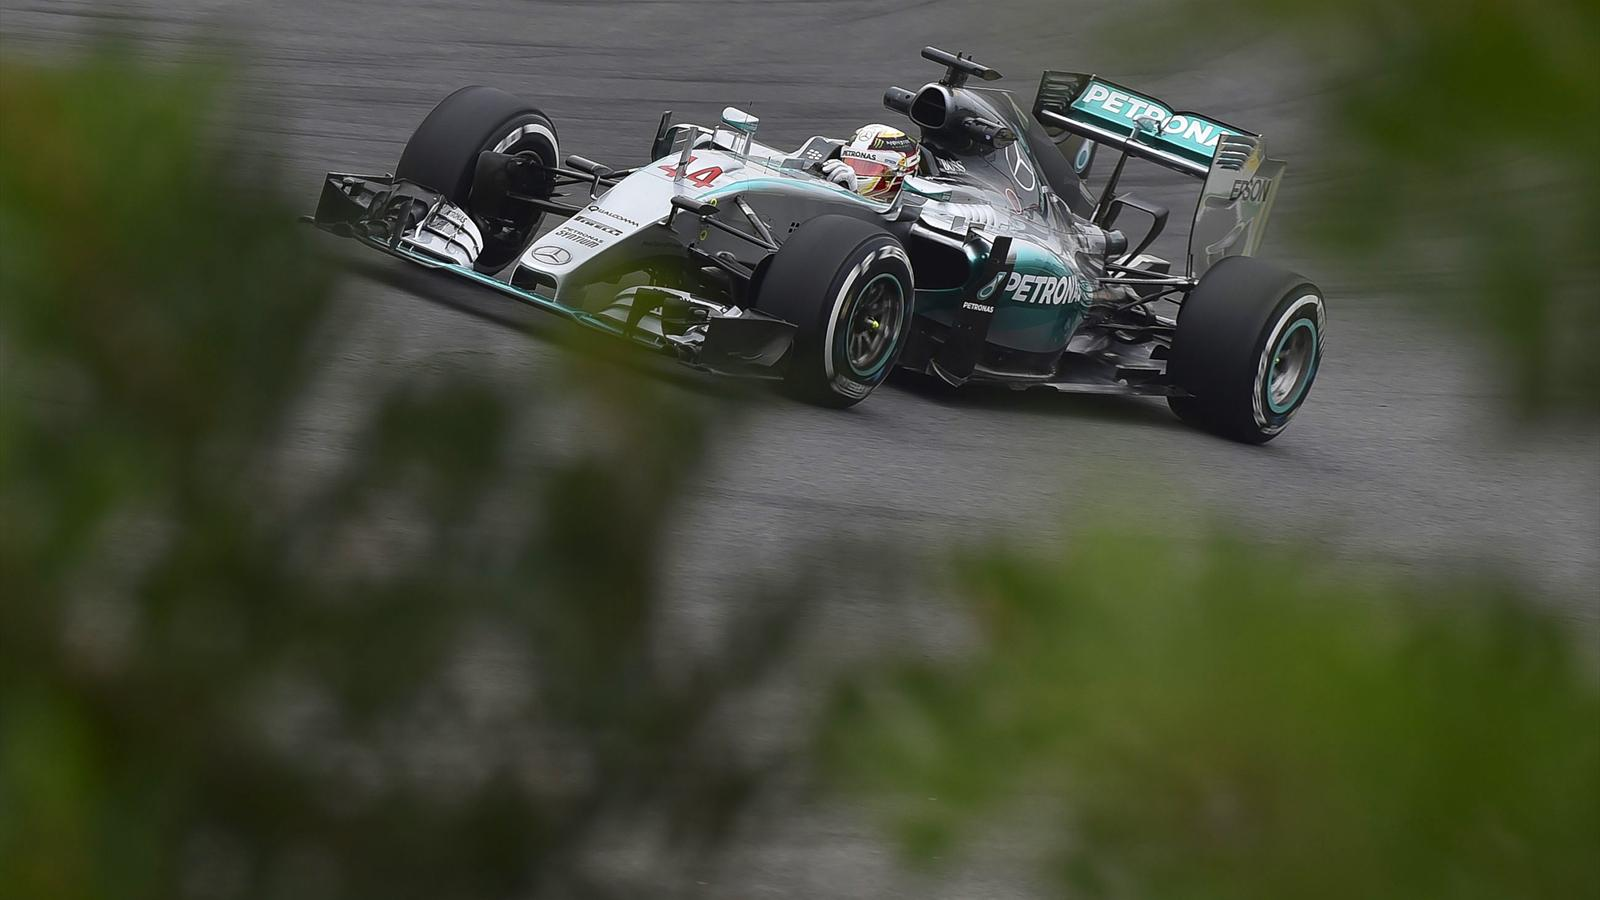 Lewis Hamilton powers his Mercedes during the free practice